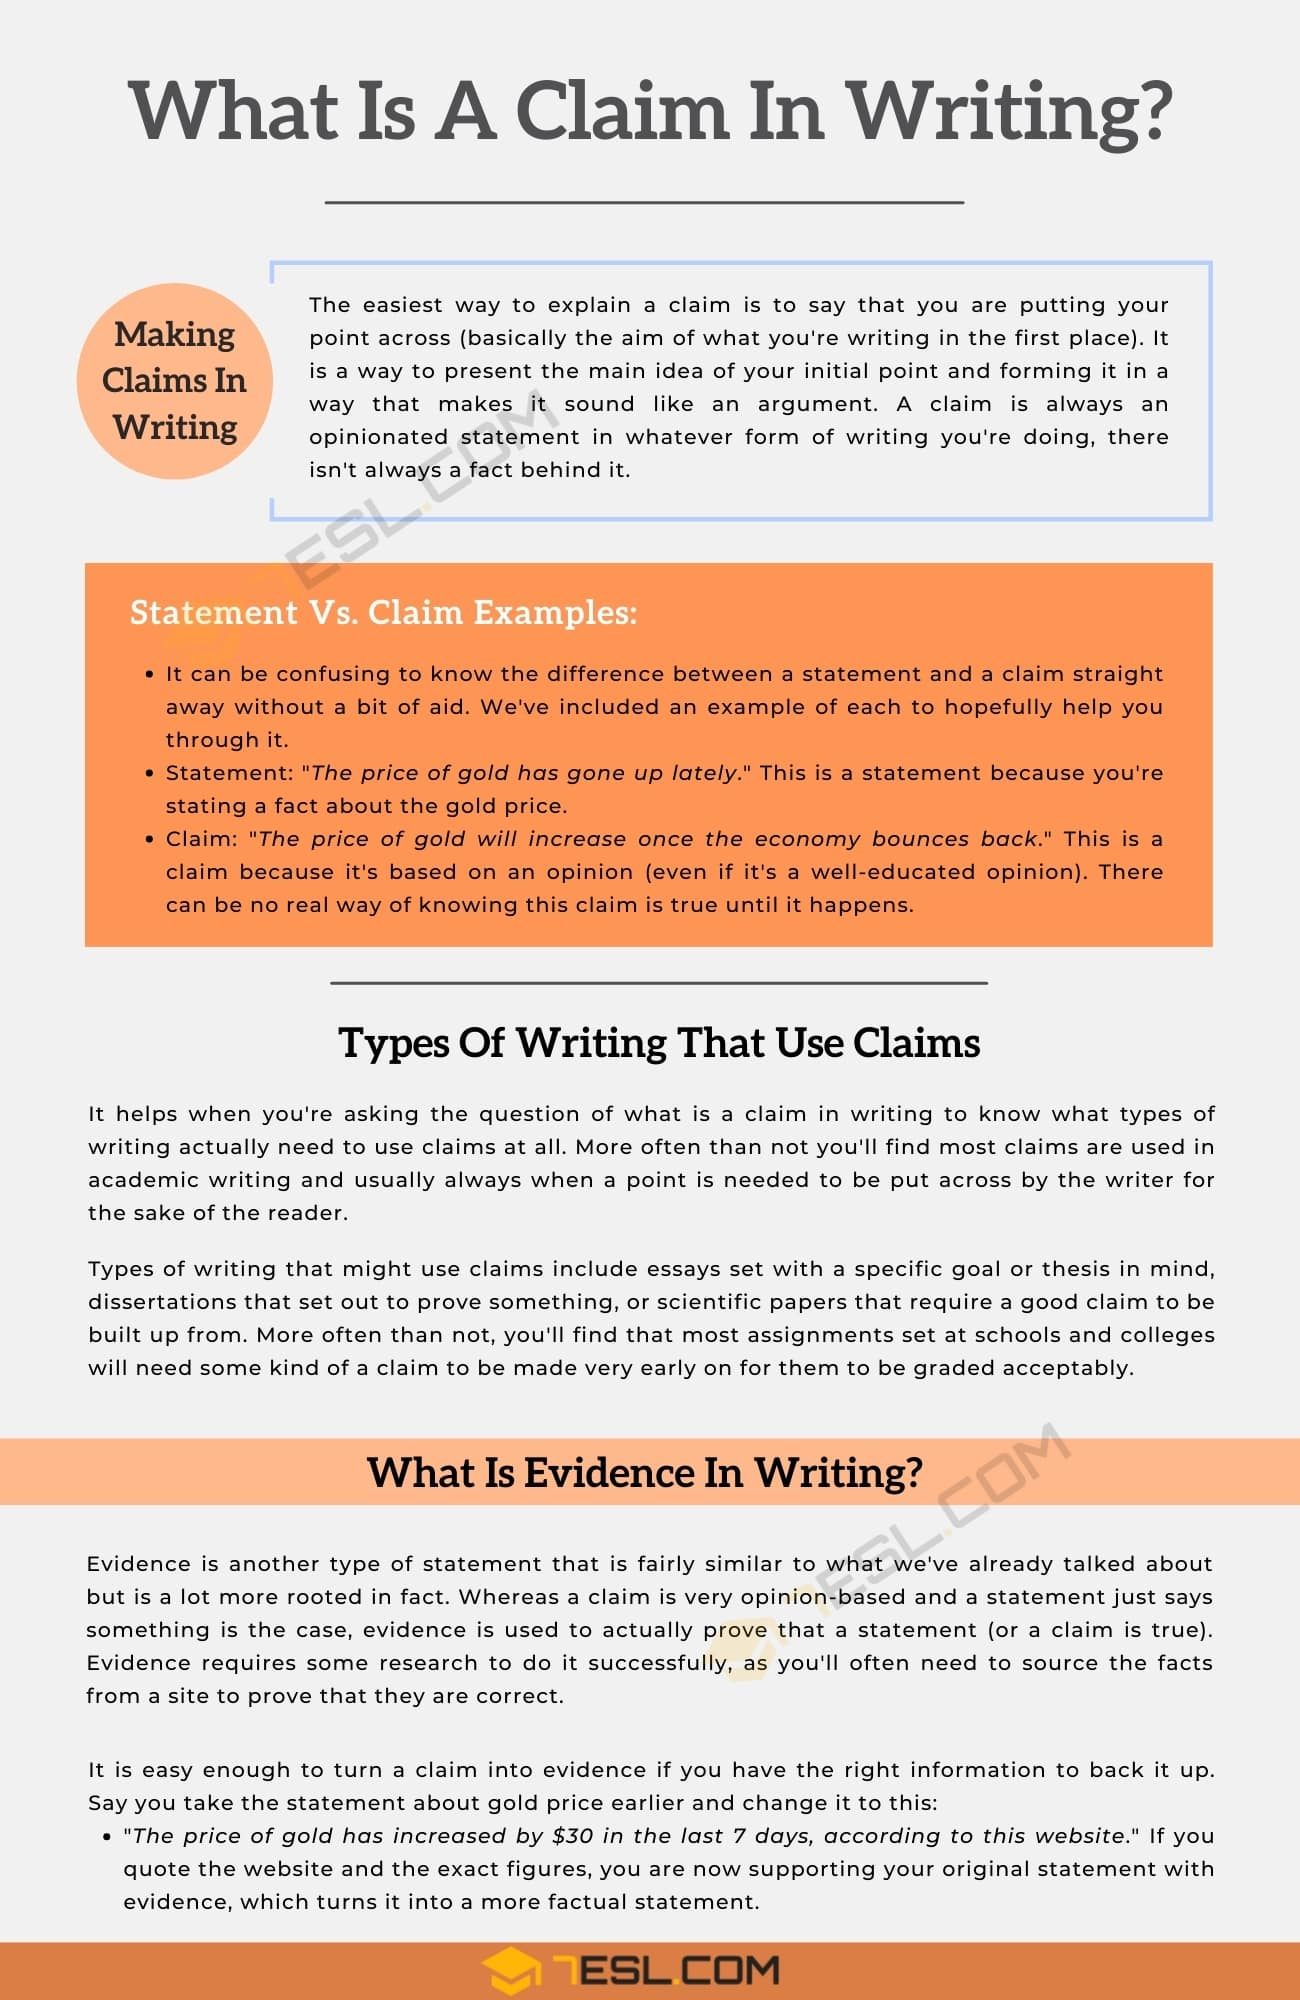 What Is A Claim In Writing